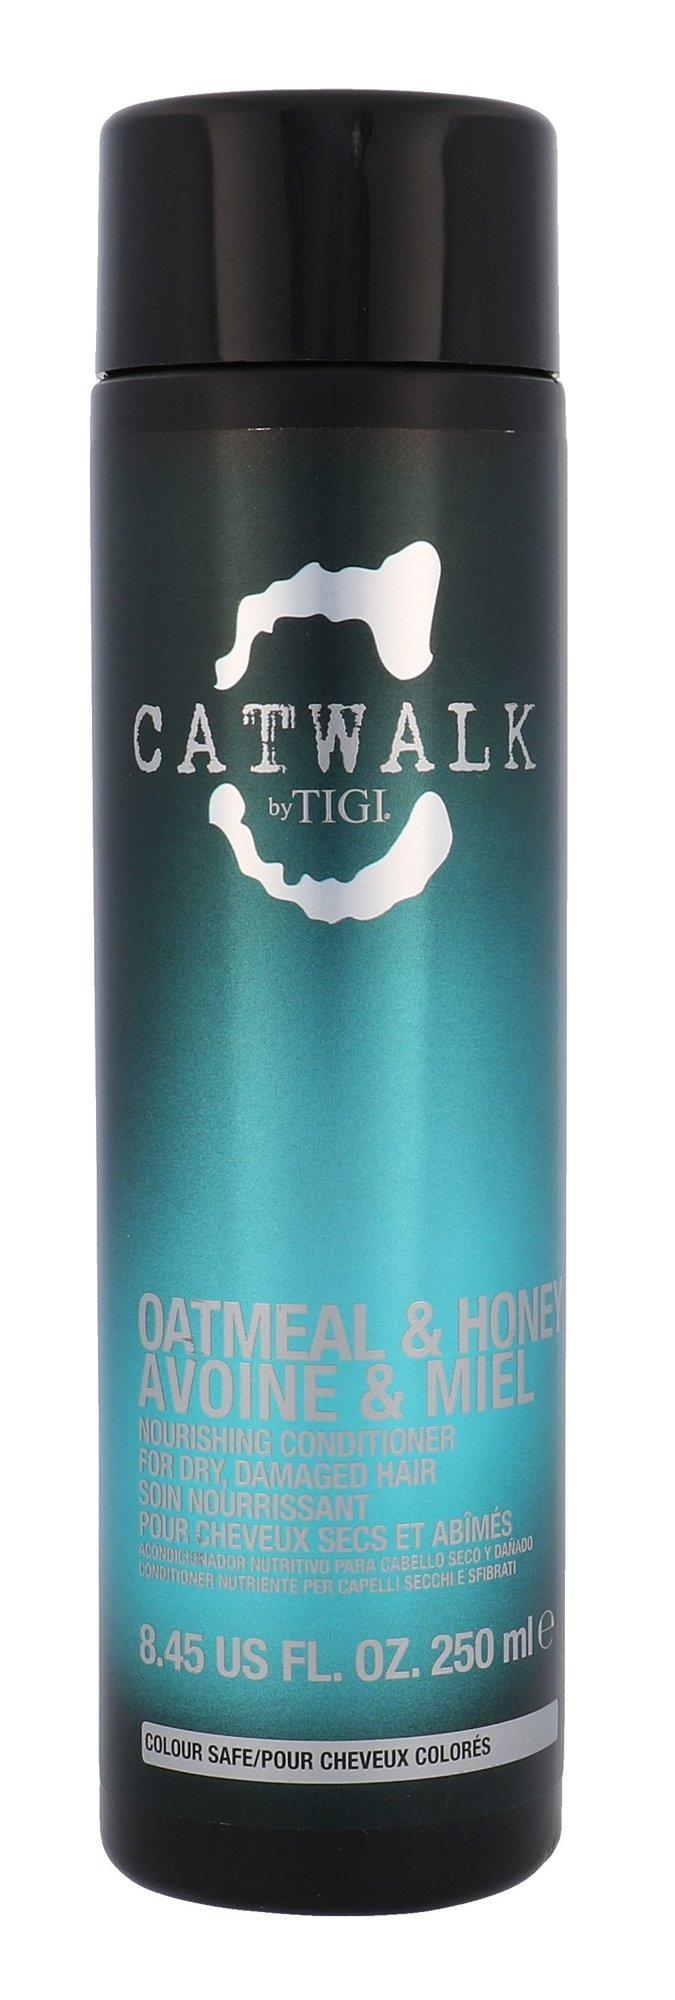 Tigi Catwalk Oatmeal & Honey Cosmetic 250ml